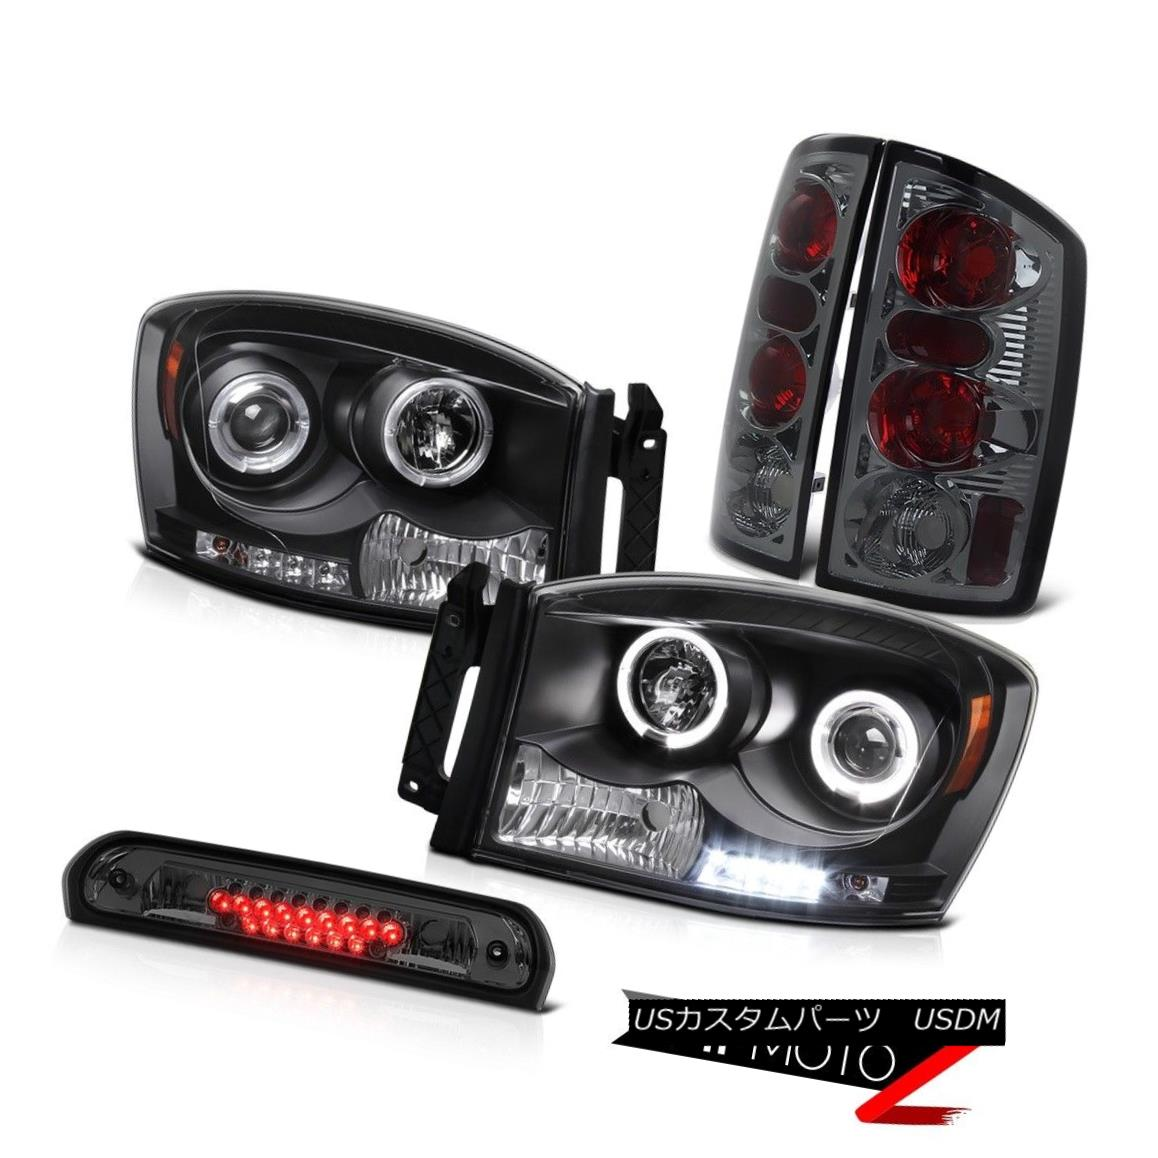 ヘッドライト 2006 Dodge Ram V6 Twin Halo LED Headlamps L+R Rear Lights Smoke Tinted 3rd Brake 2006 Dodge Ram V6ツインHalo LEDヘッドランプL + RリアライトSmoke Tinted 3rdブレーキ